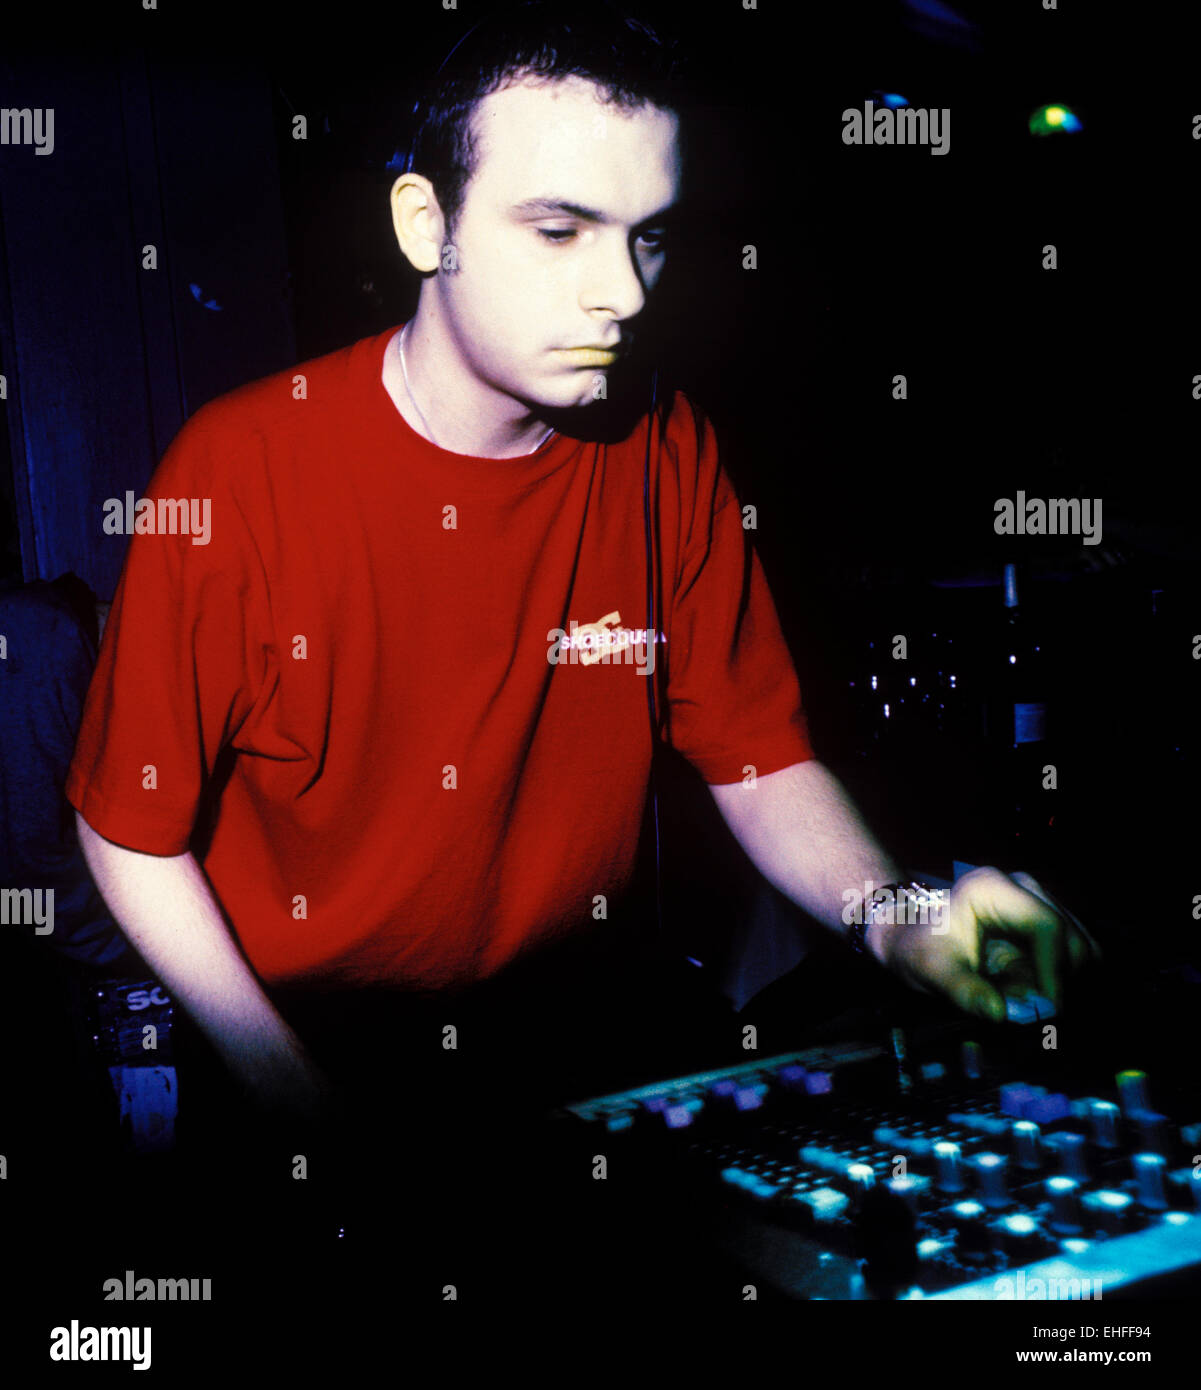 Andy C DJing at Ram Trilogy at The End London. - Stock Image